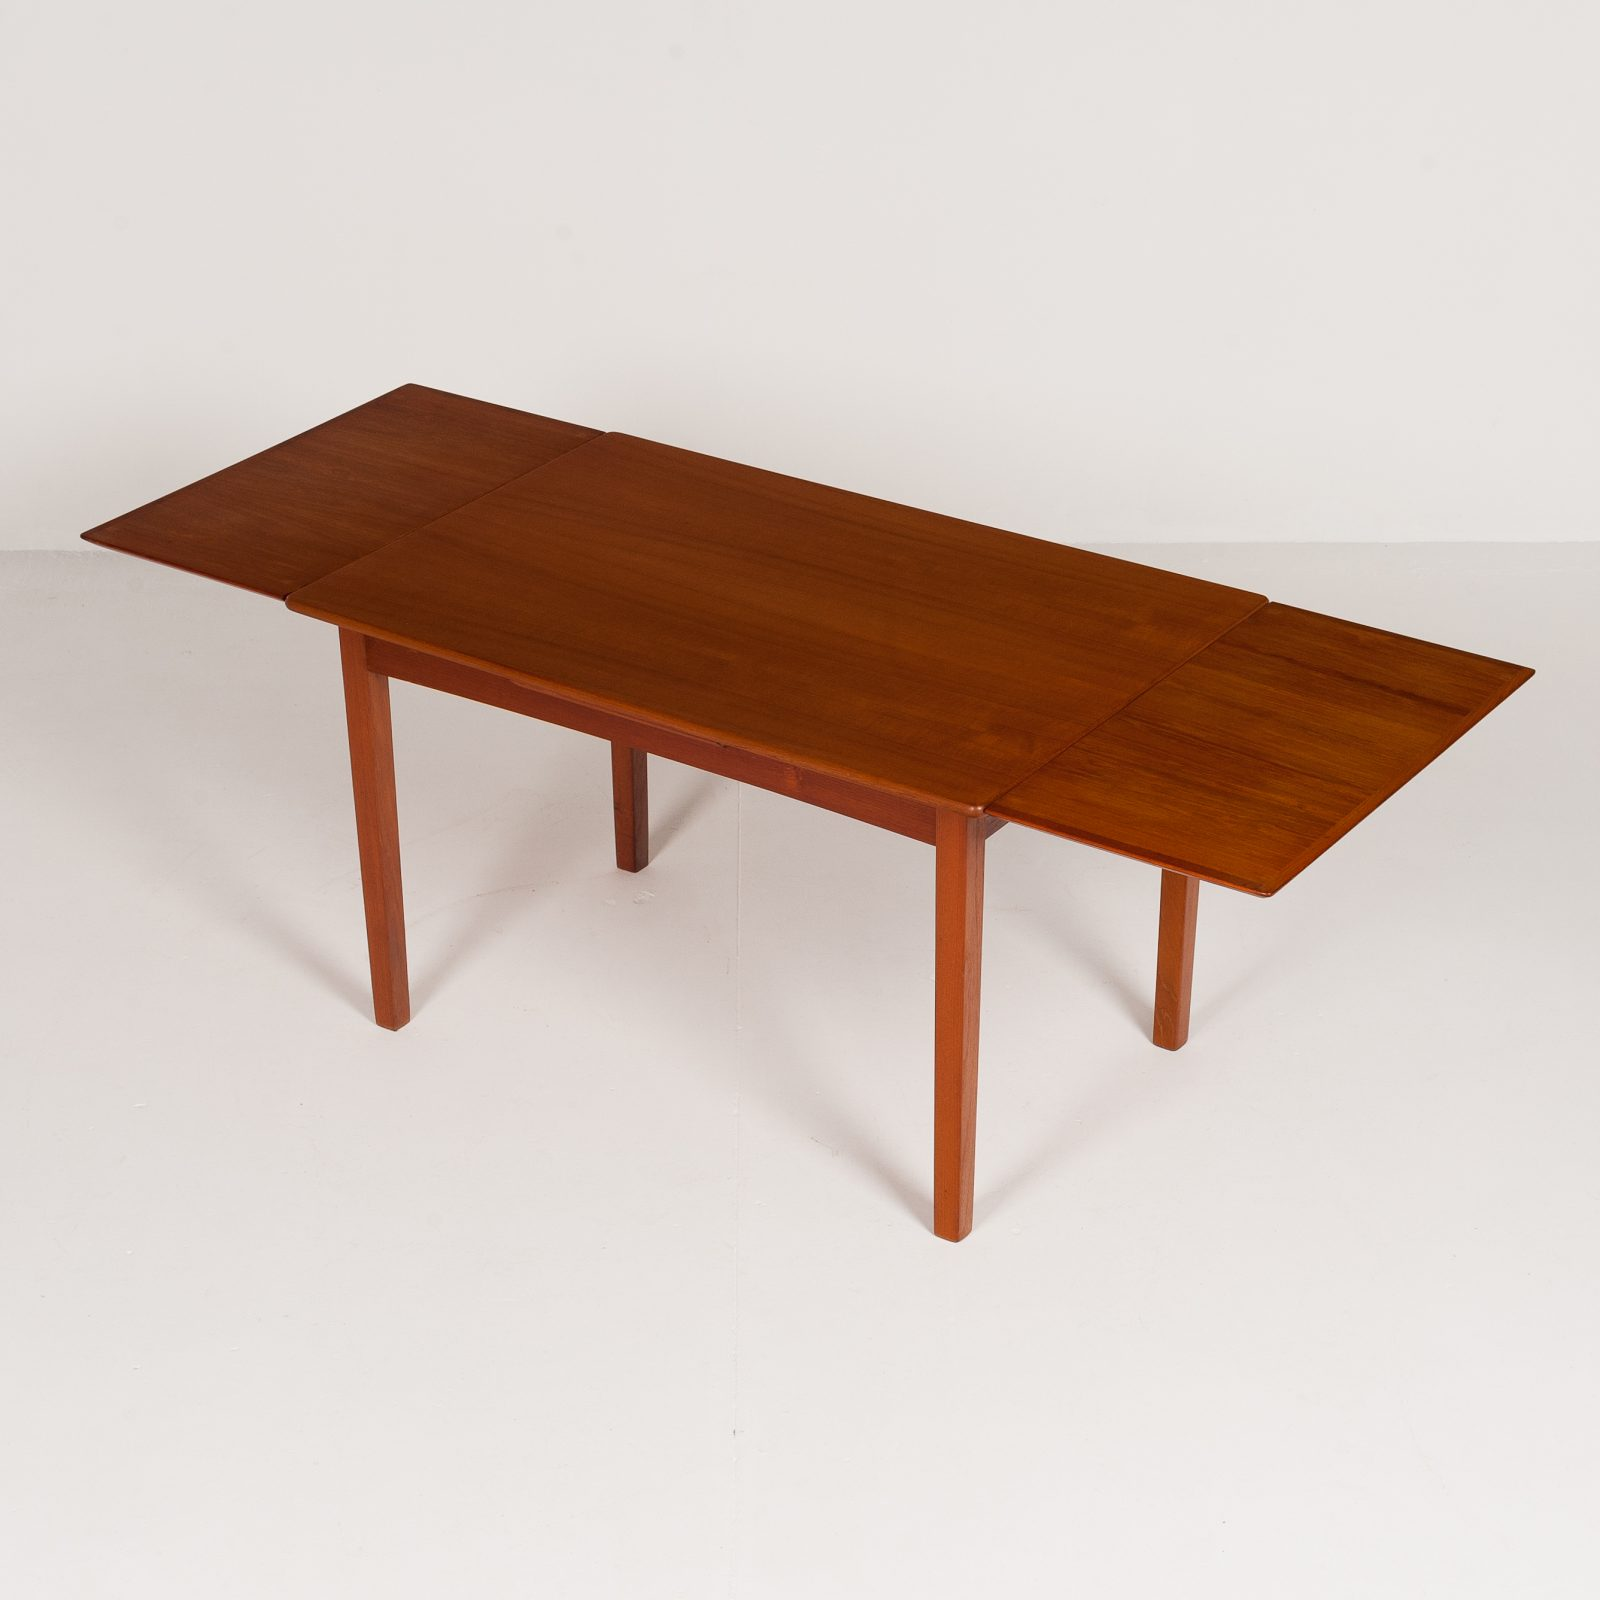 Rectangular Extension Dining Table In Teak With Square Legs, 1960s, Denmark6009